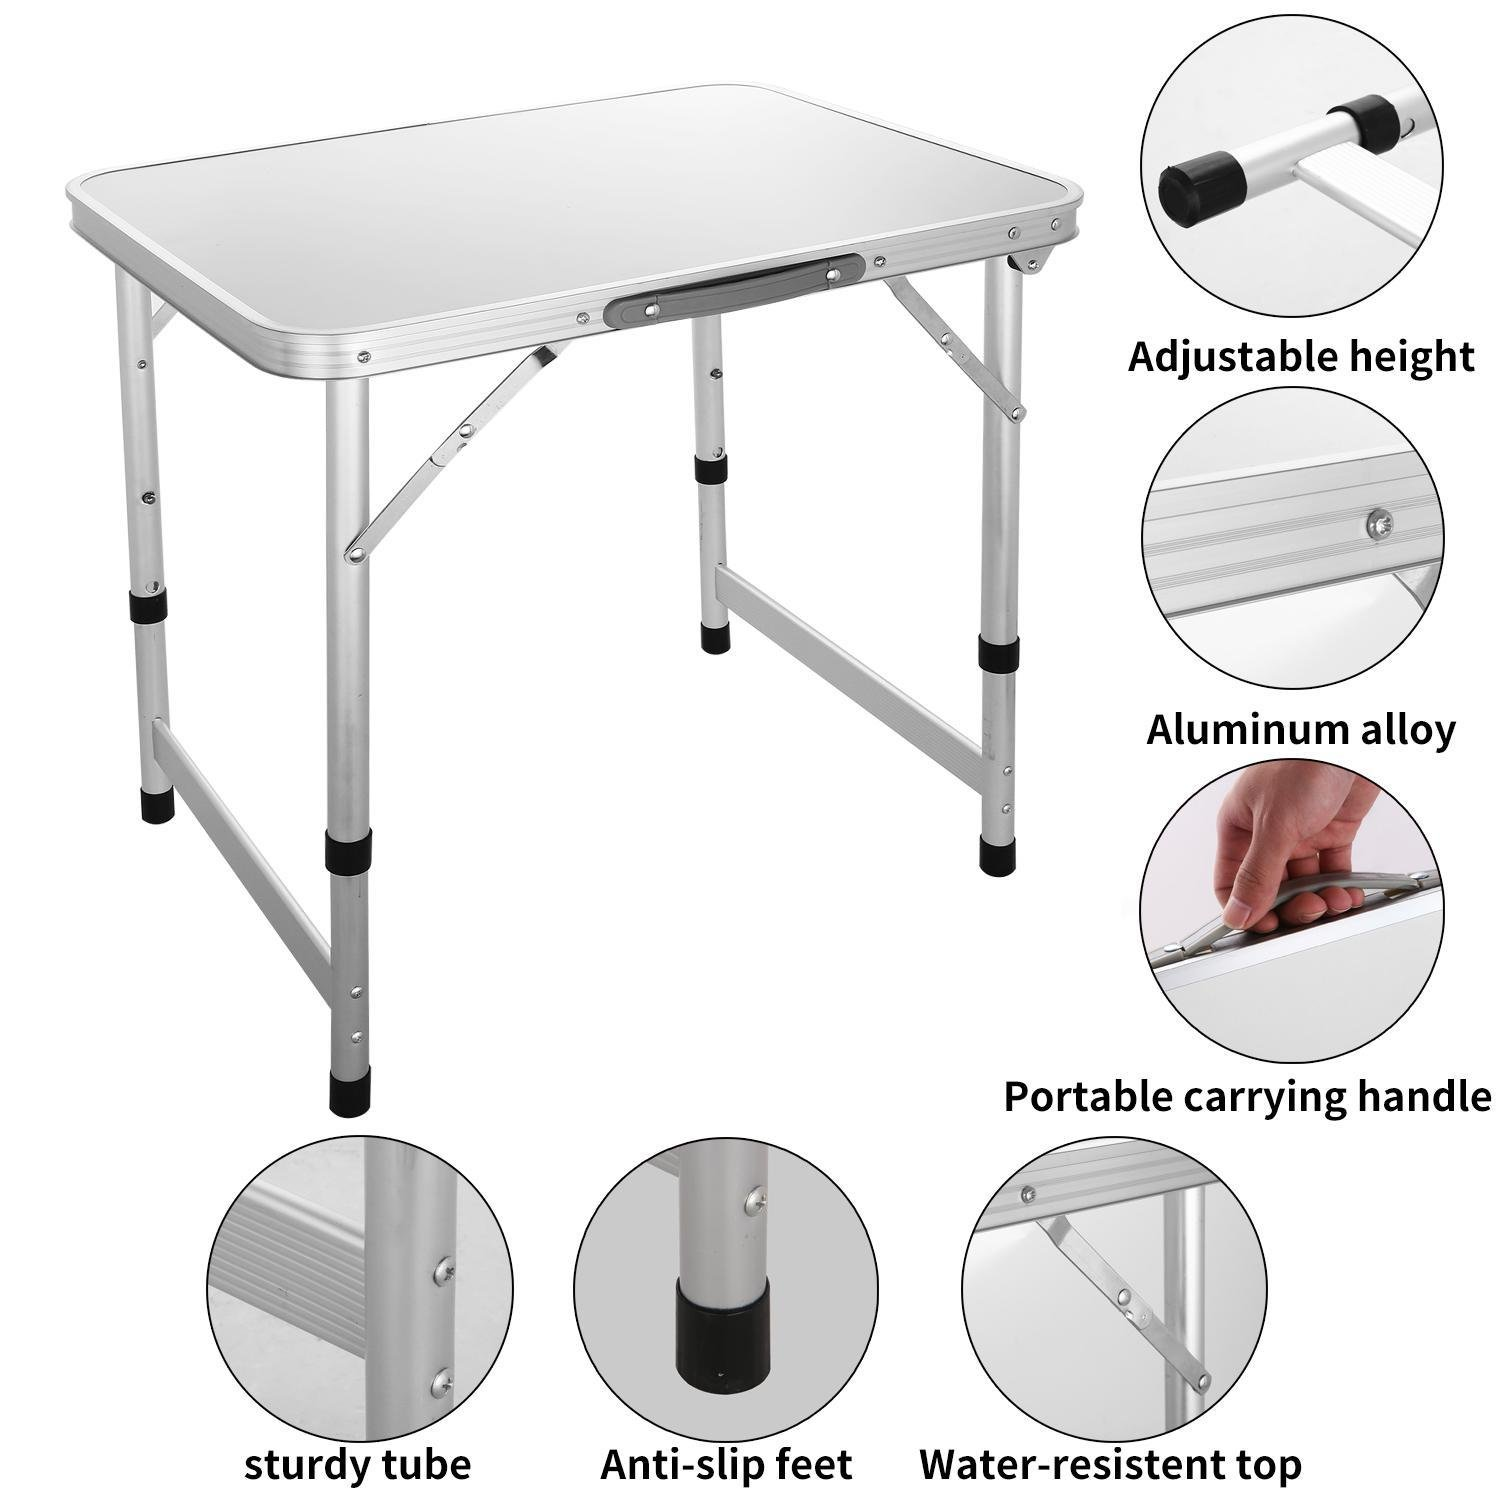 Bluefringe Folding Table/Breakfast Serving Bed Tray/Mini Picnic Table/Foldable Laptop Table - Multipurpose for Party Dining Desk Indoor, Outdoor, Office-26.5 x 21.8 inch